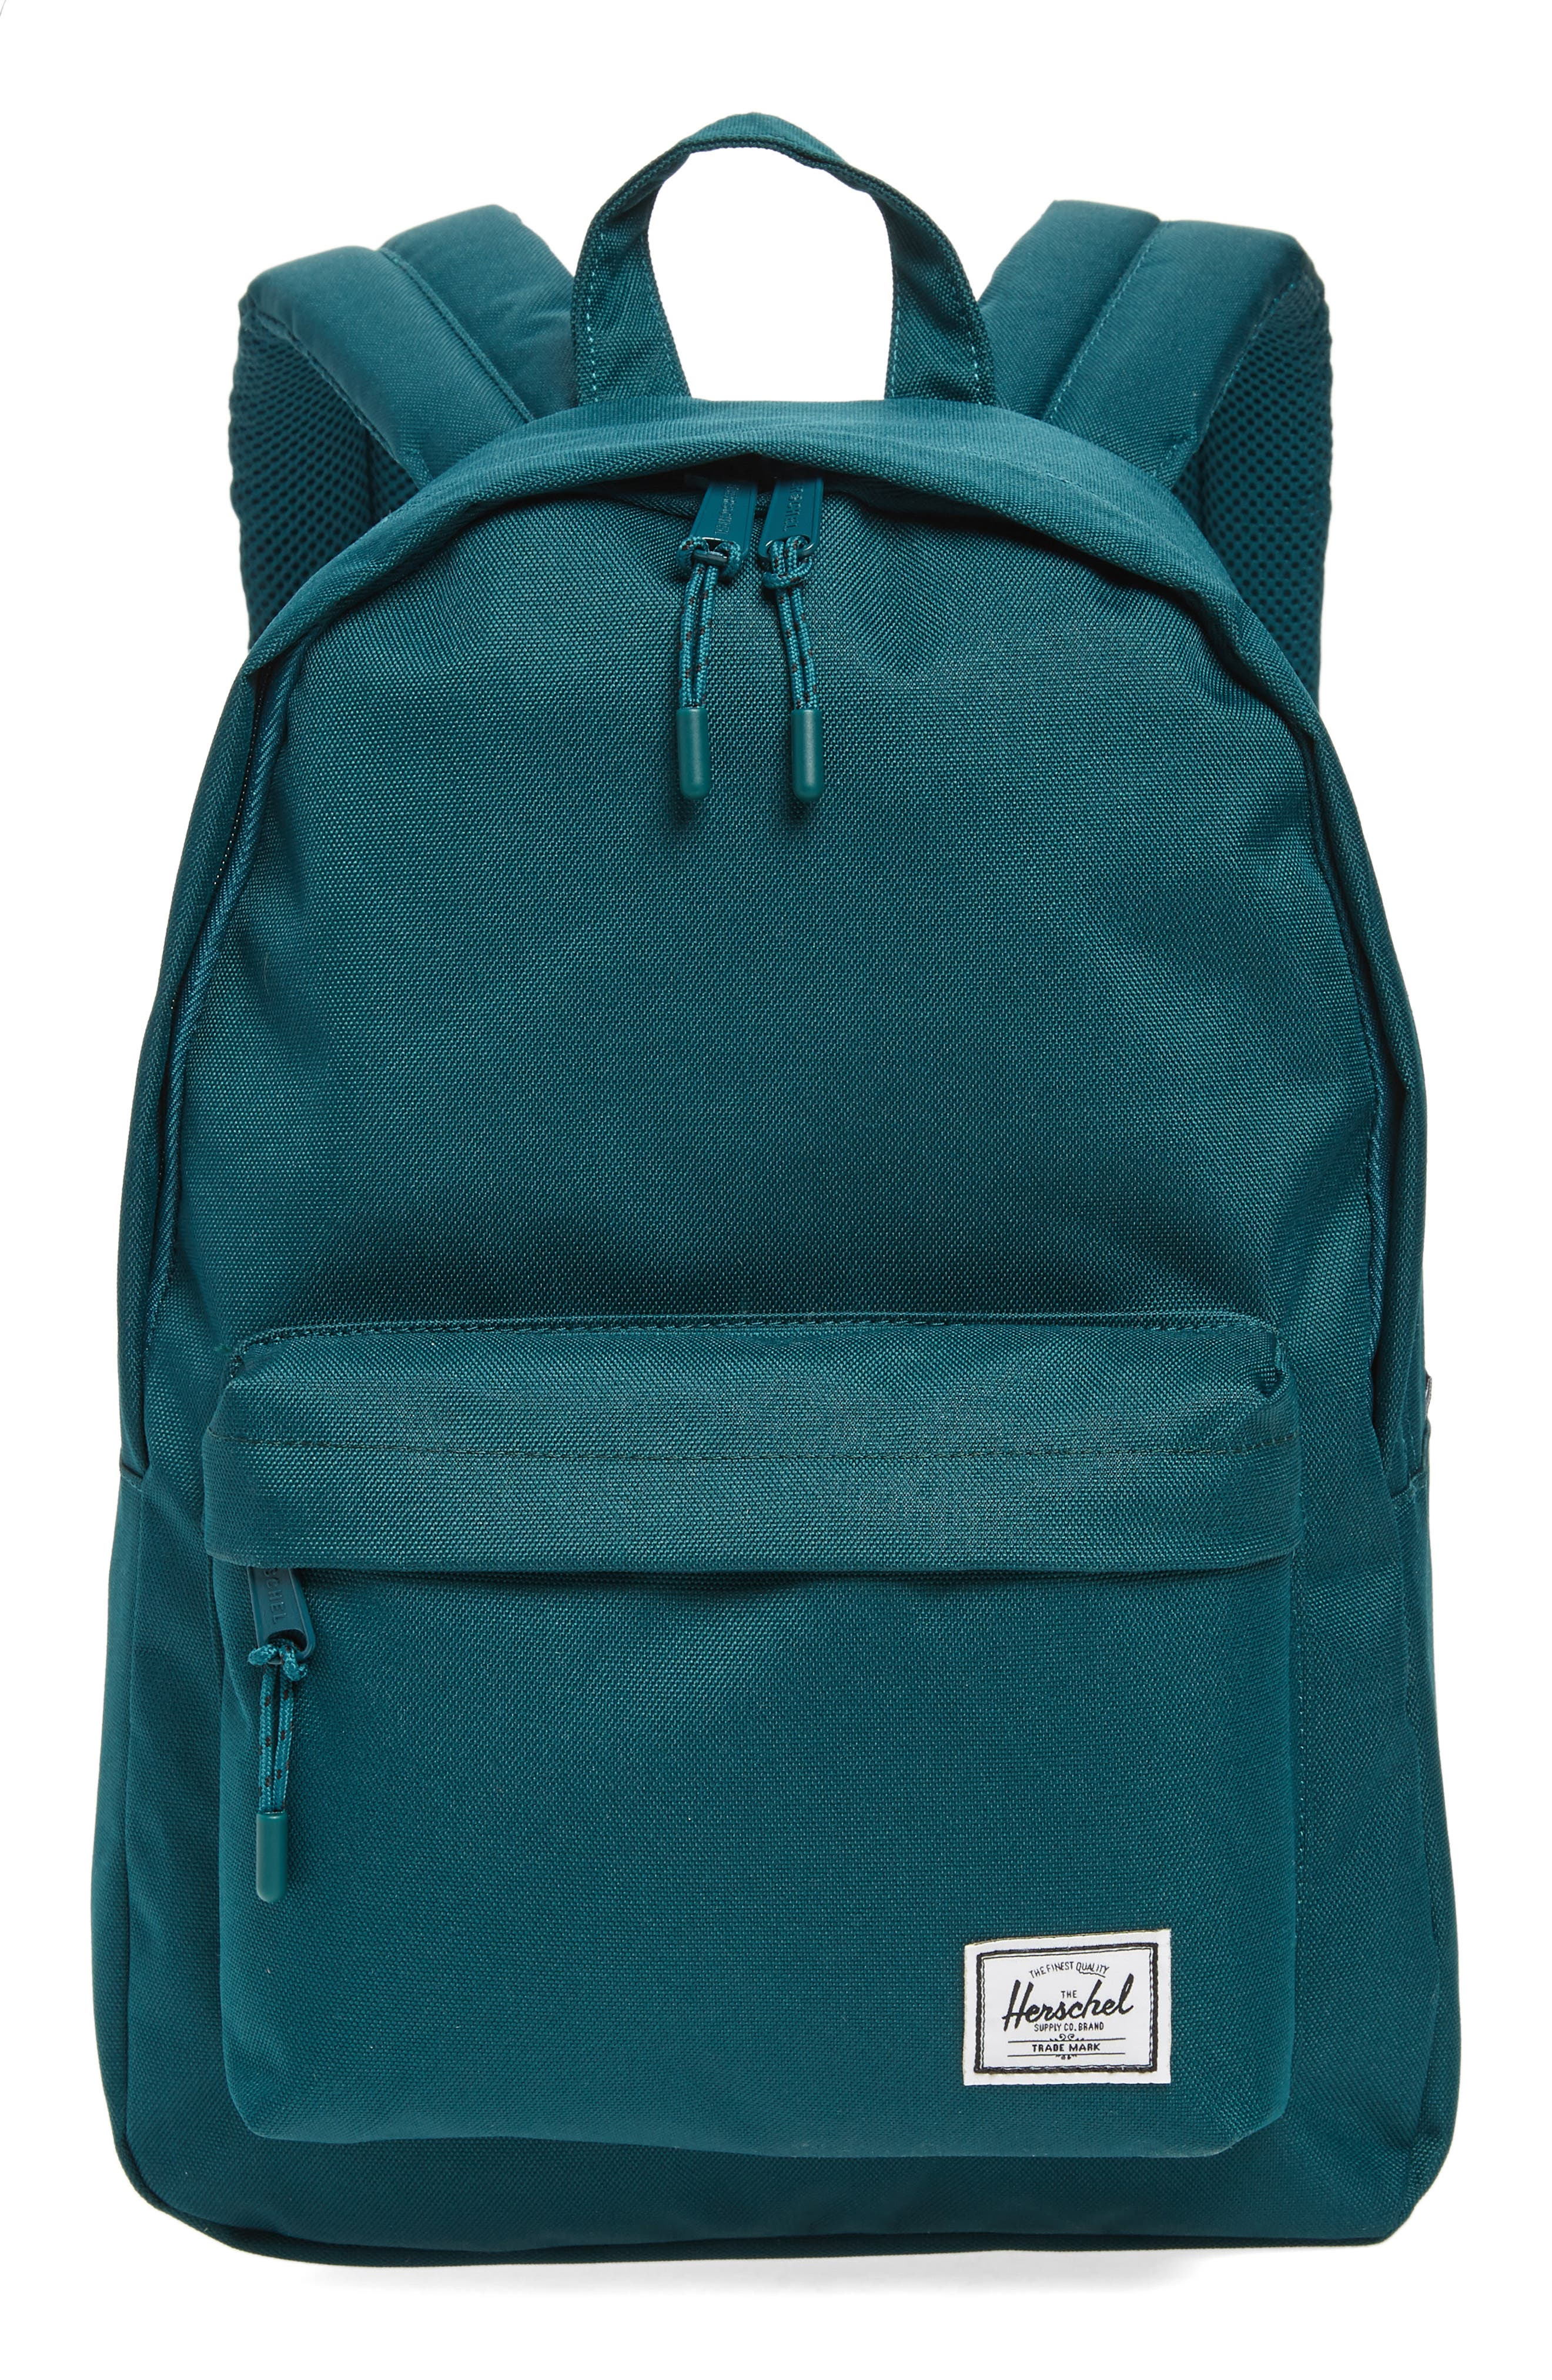 Classic Mid Volume Backpack,                             Main thumbnail 1, color,                             DEEP TEAL